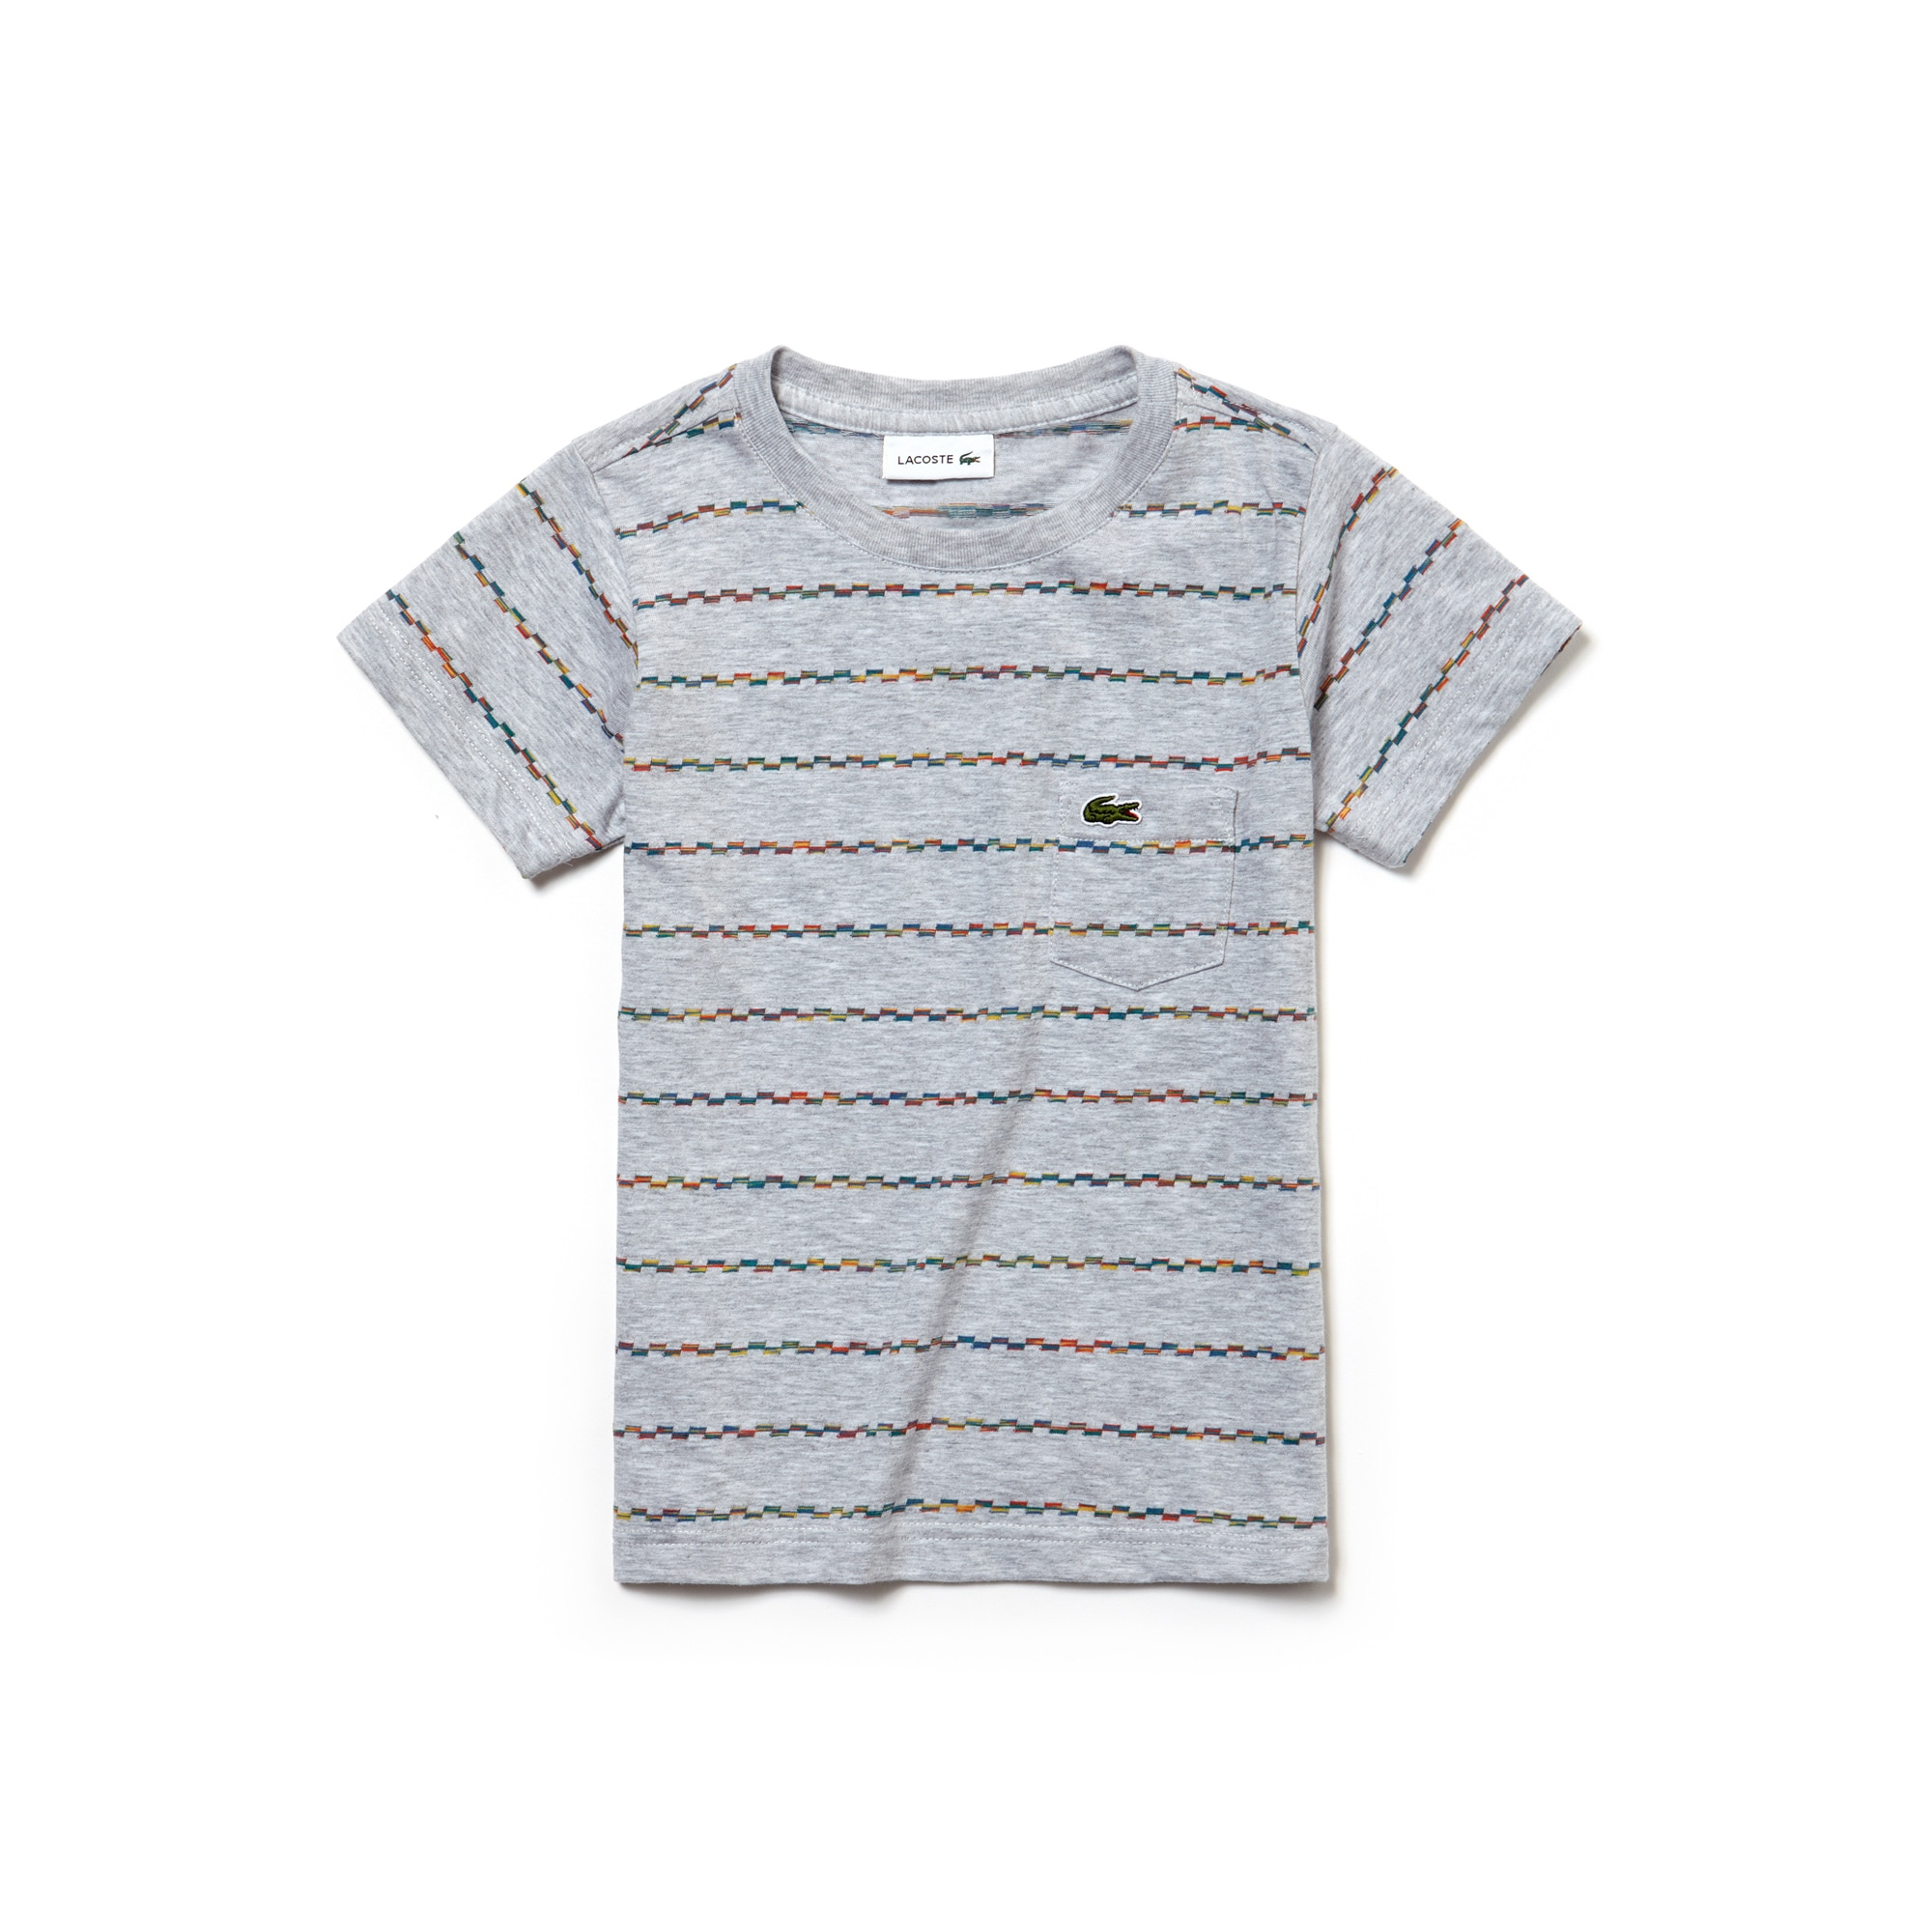 Boys' Crew Neck Multicolored Stripes Jacquard Jersey T-shirt